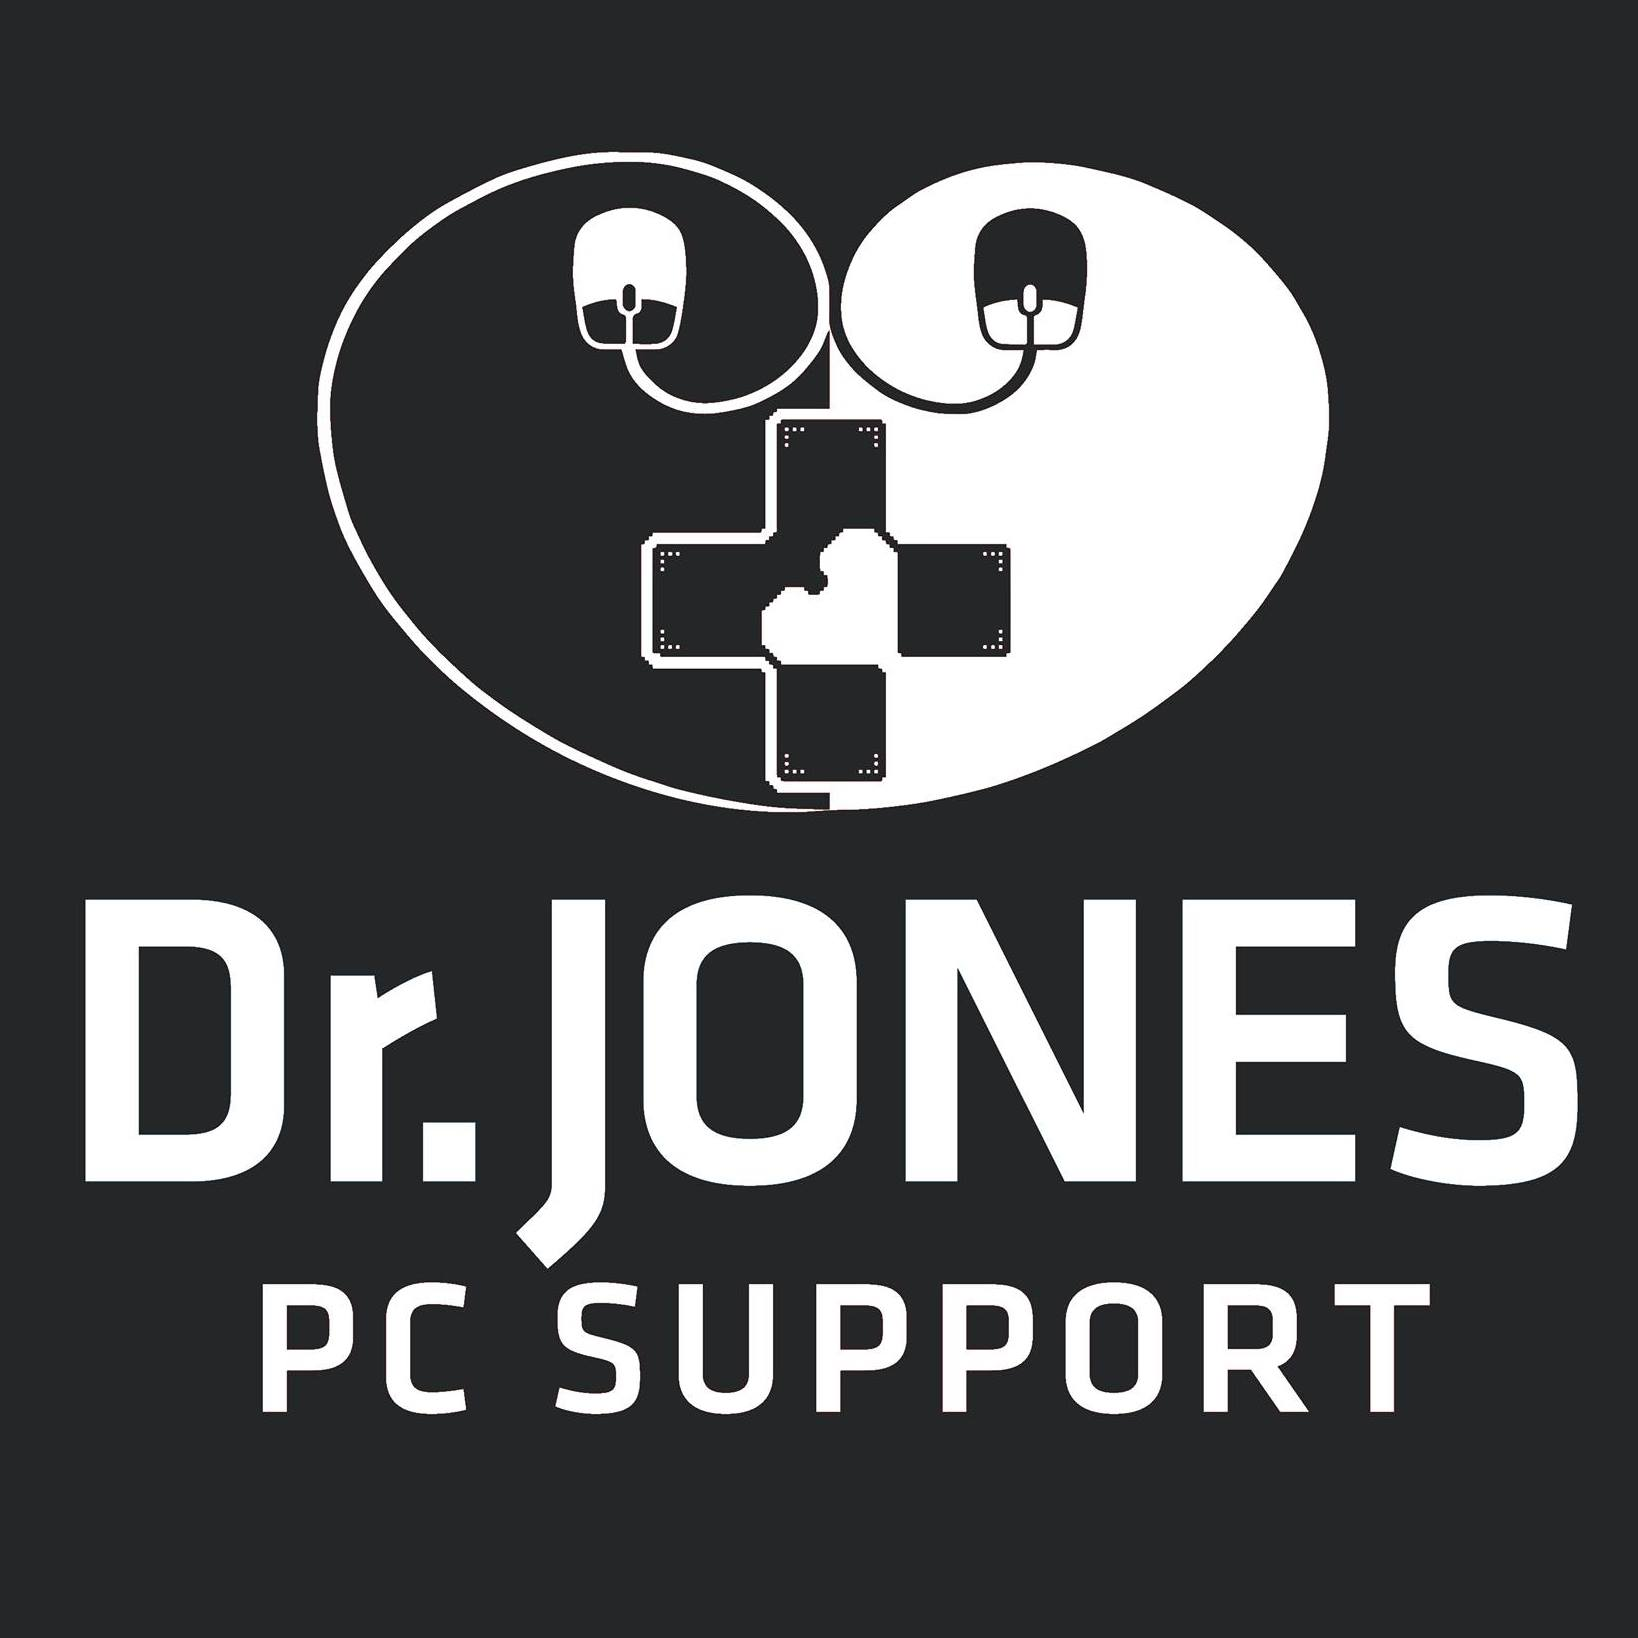 Logo of Dr Jones PC Support IT Services In Biggleswade, Bedfordshire